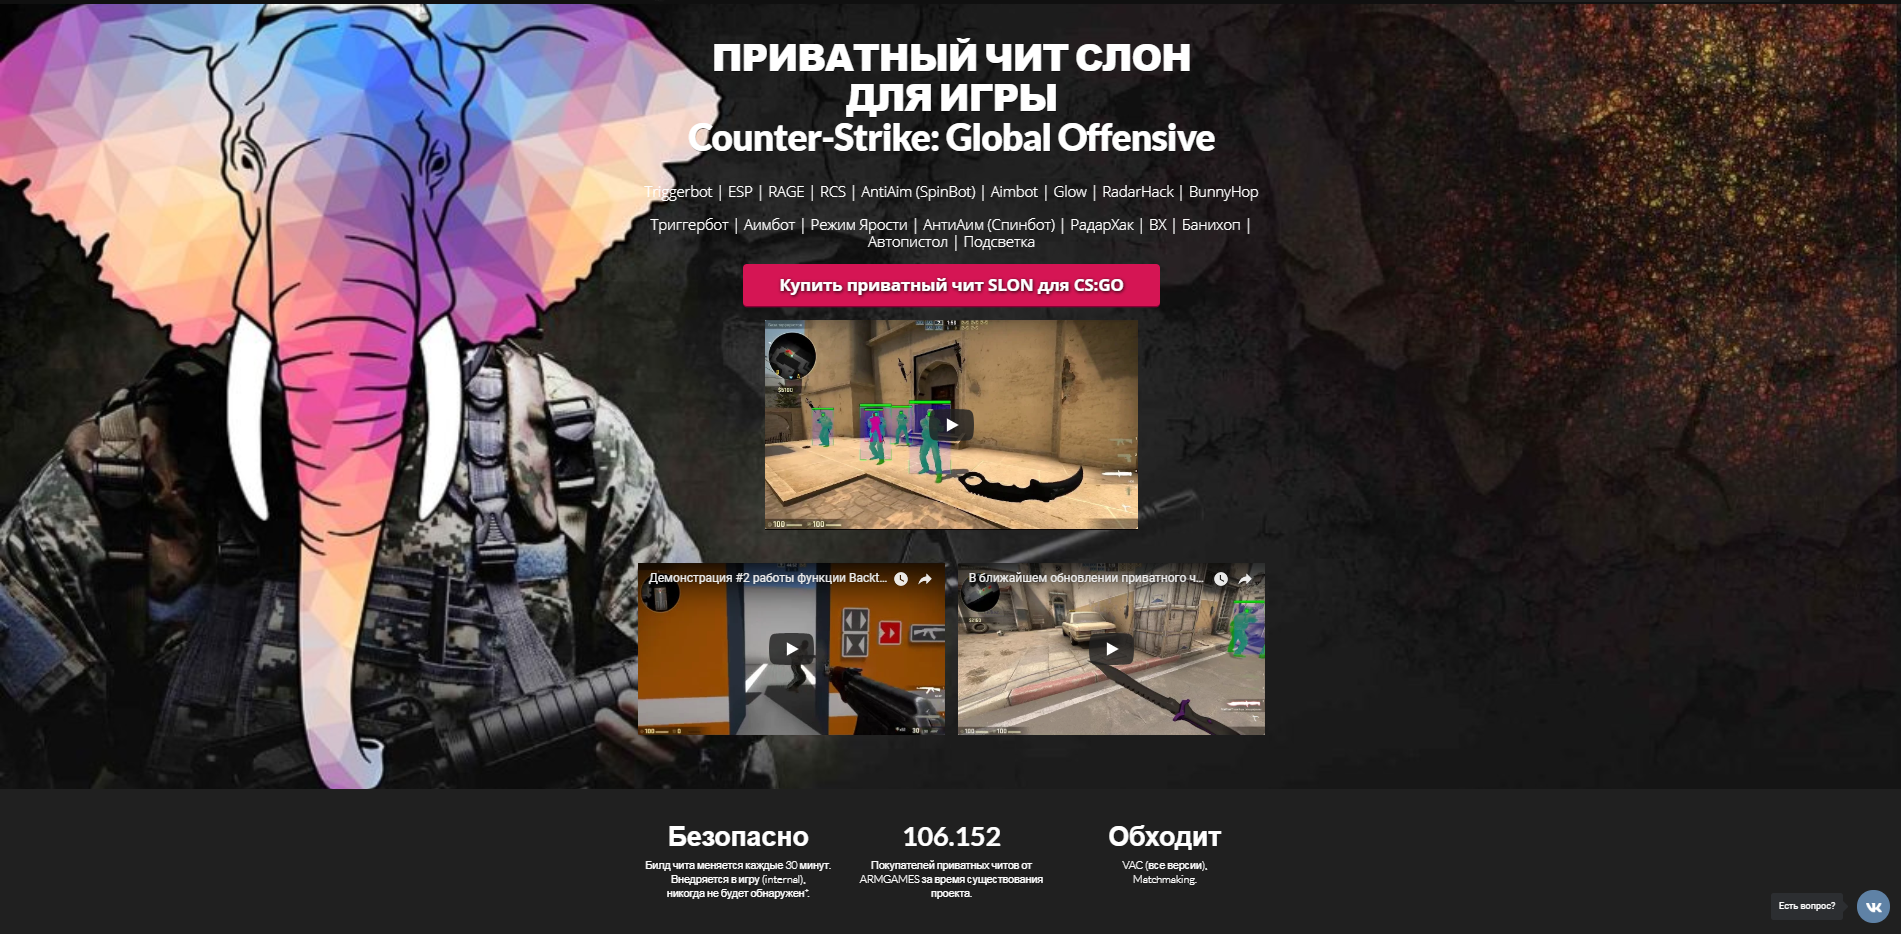 SLON Counter-Strike GO - Access 1 days